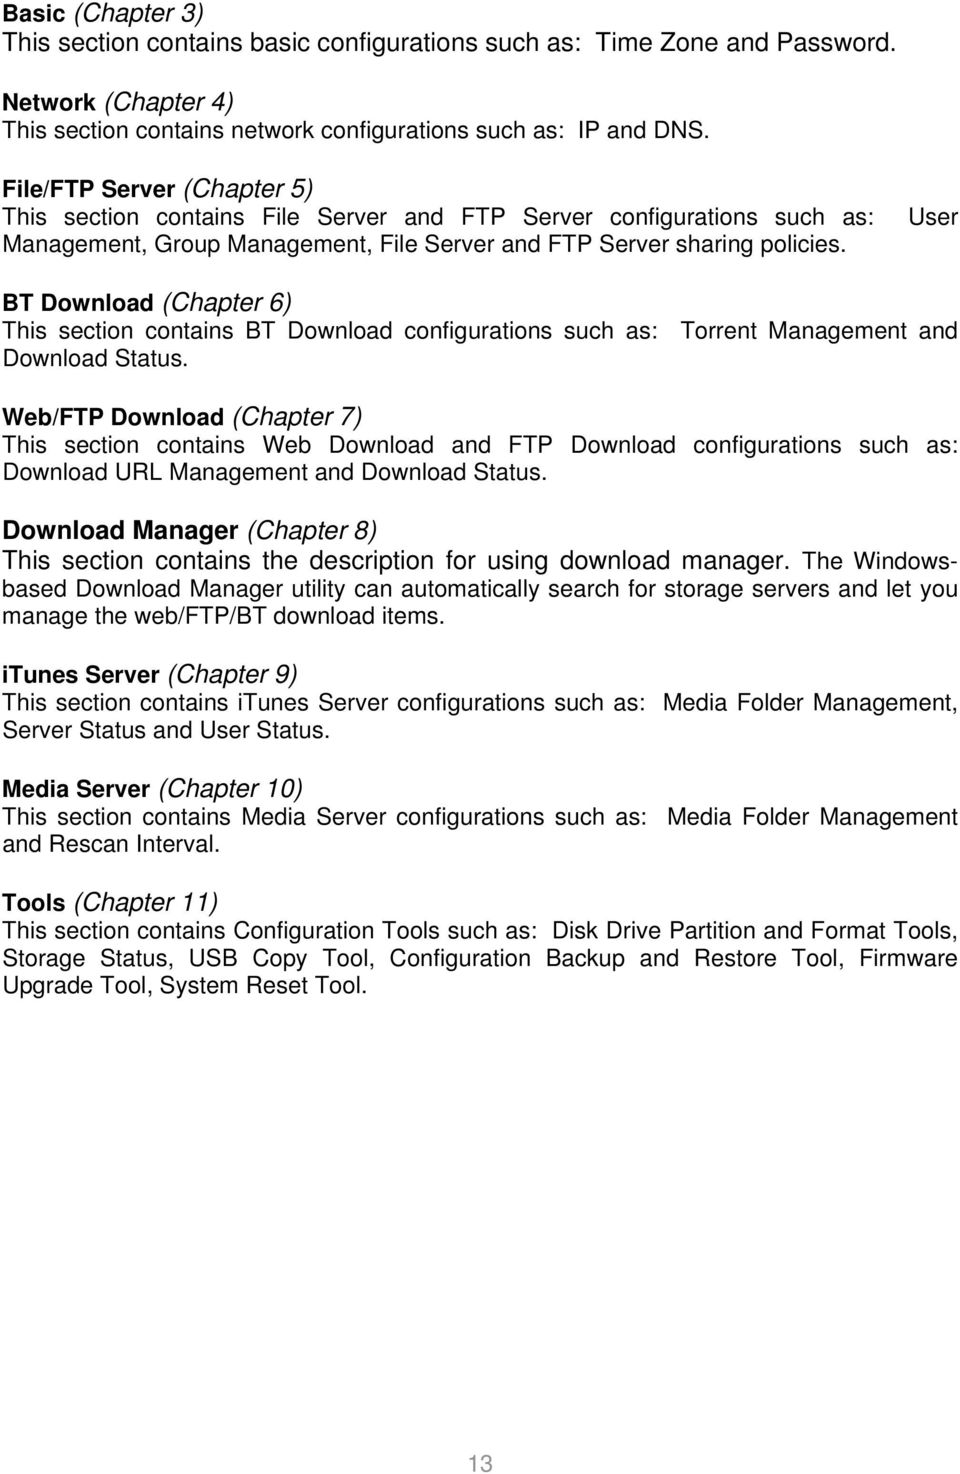 BT Download (Chapter 6) This section contains BT Download configurations such as: Torrent Management and Download Status.